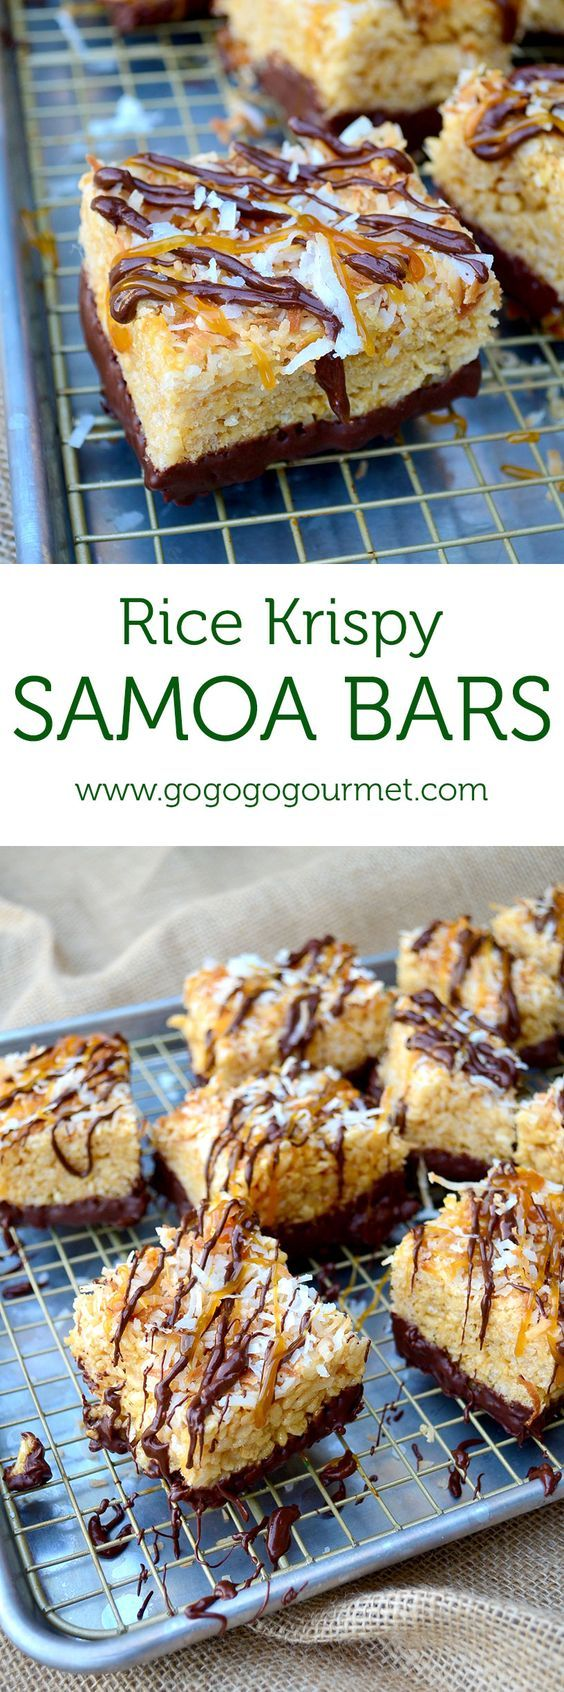 Take Rice Krispie Treats to the next level by making these chocolate-dipped caramel-chocolate-coconut topped Samoa Rice Krispie Treats